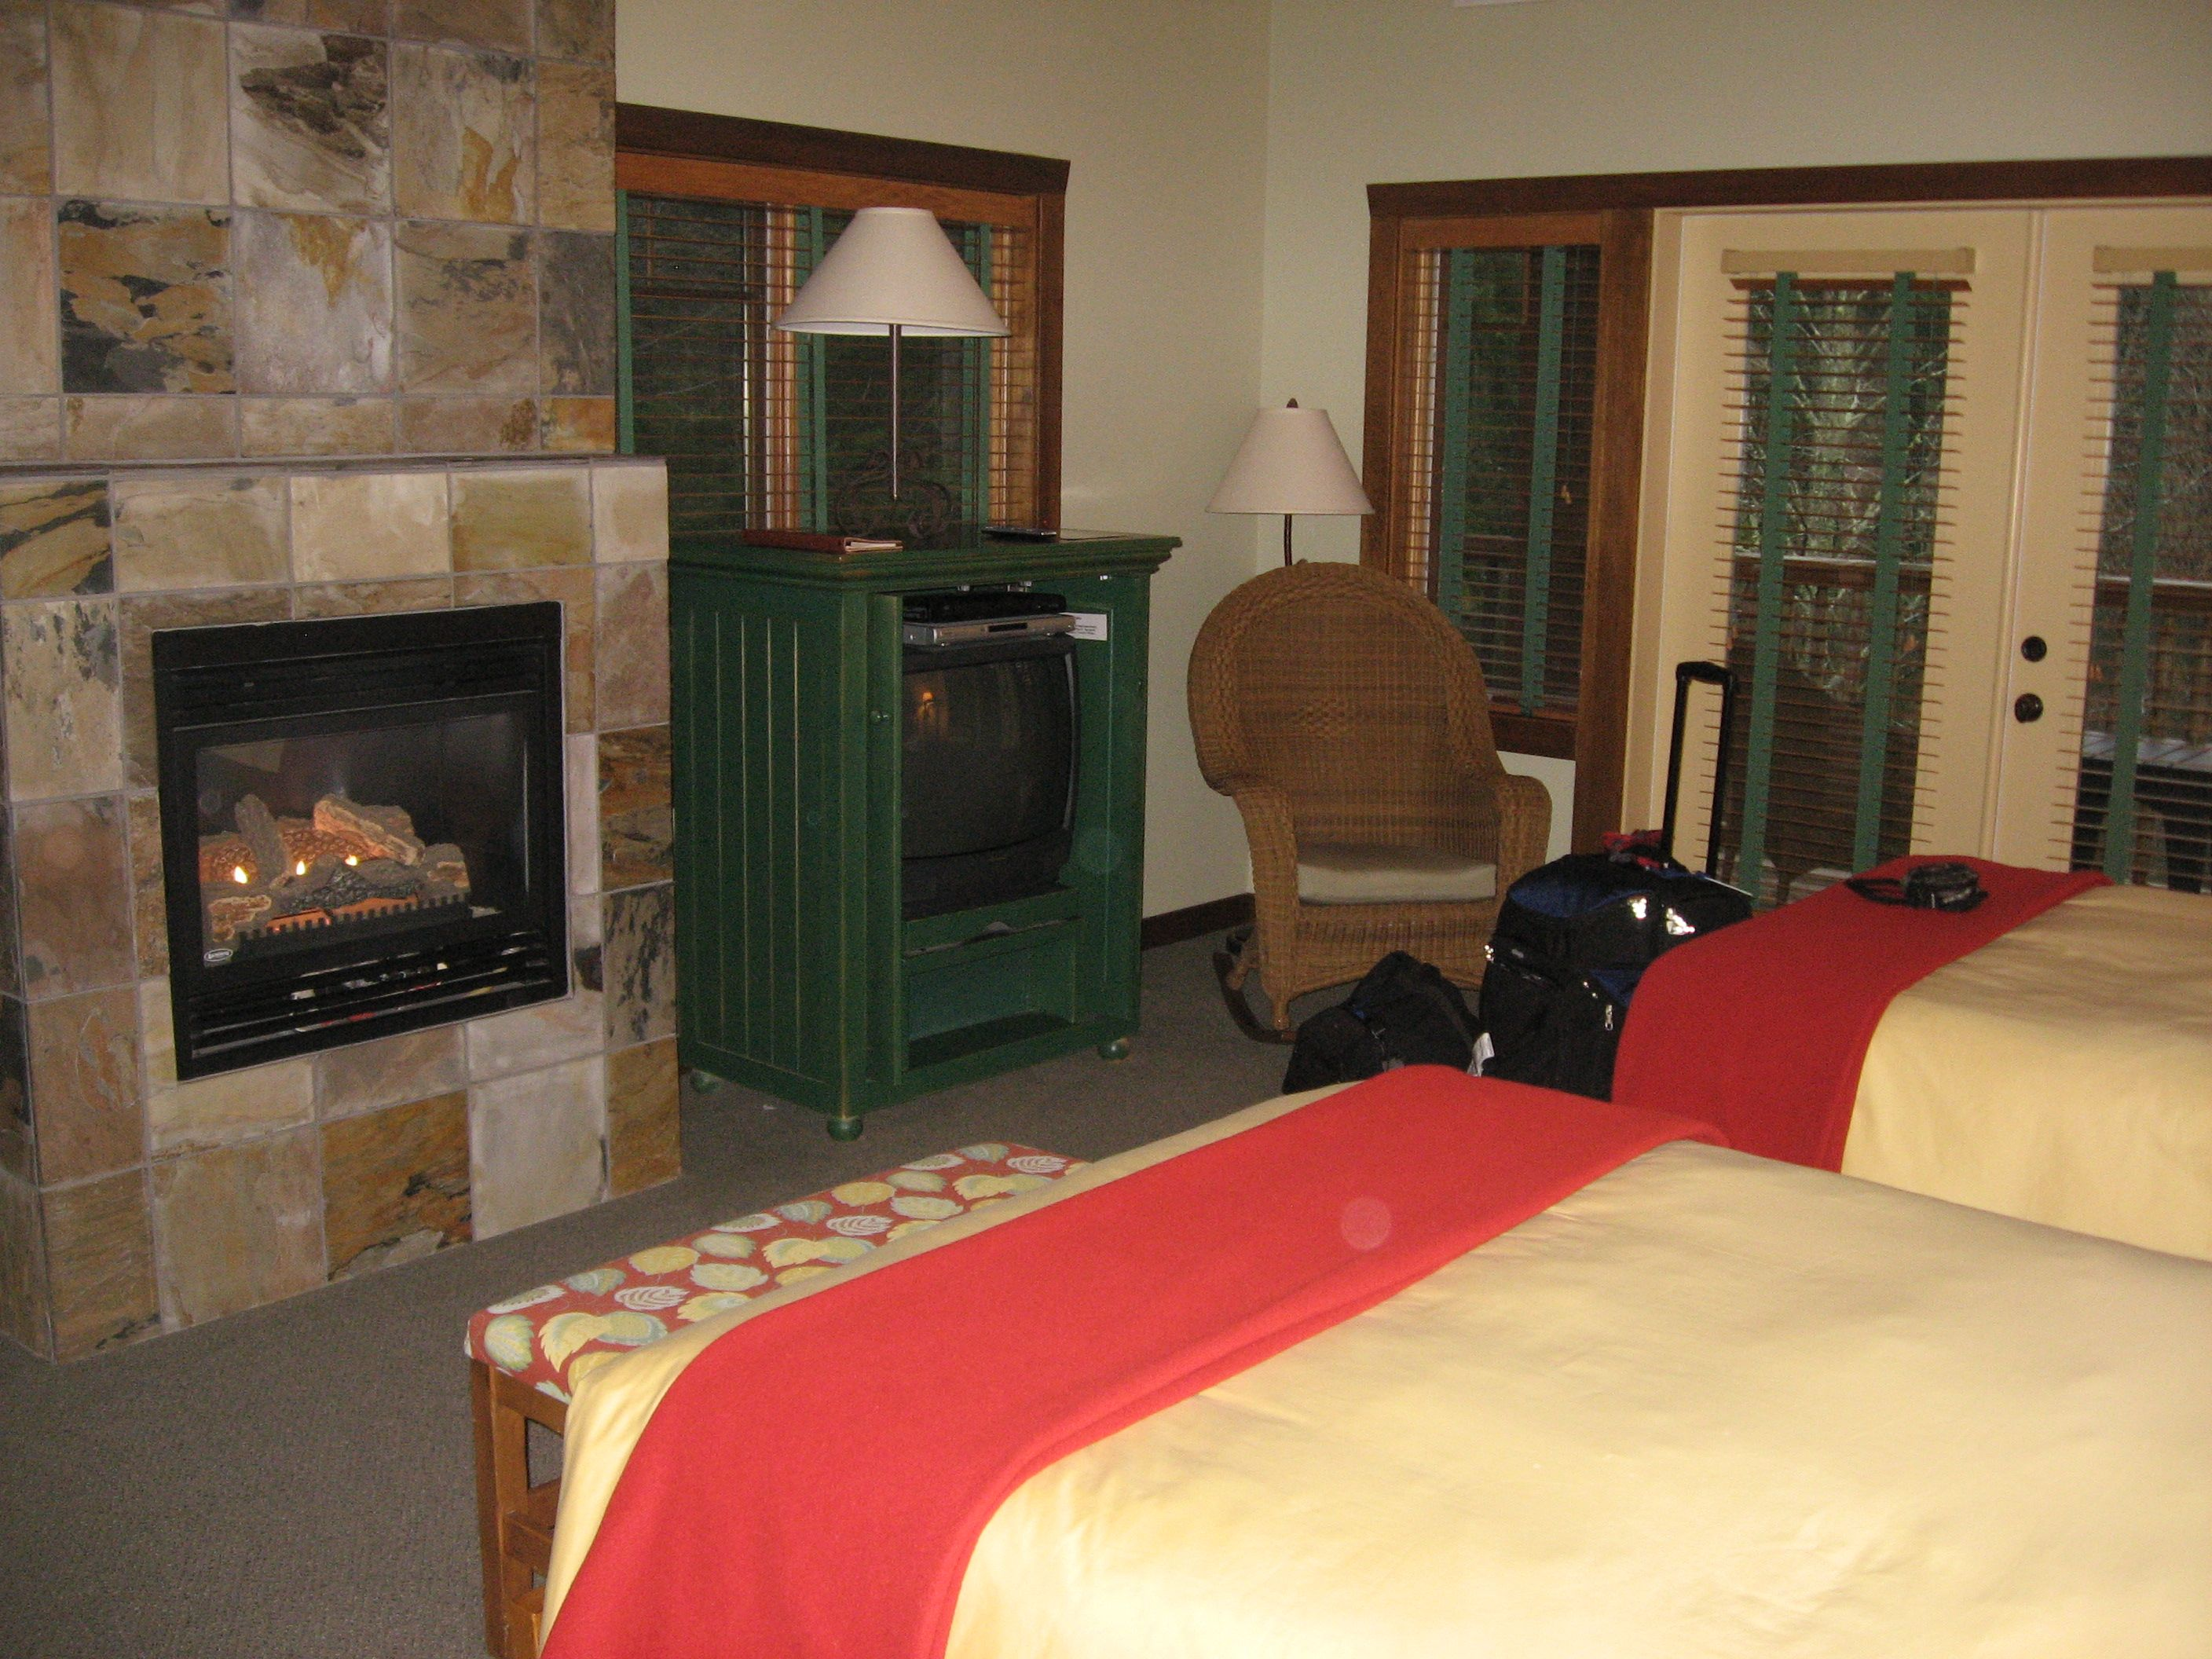 One of the two-bed rooms in the Lakedale lodge